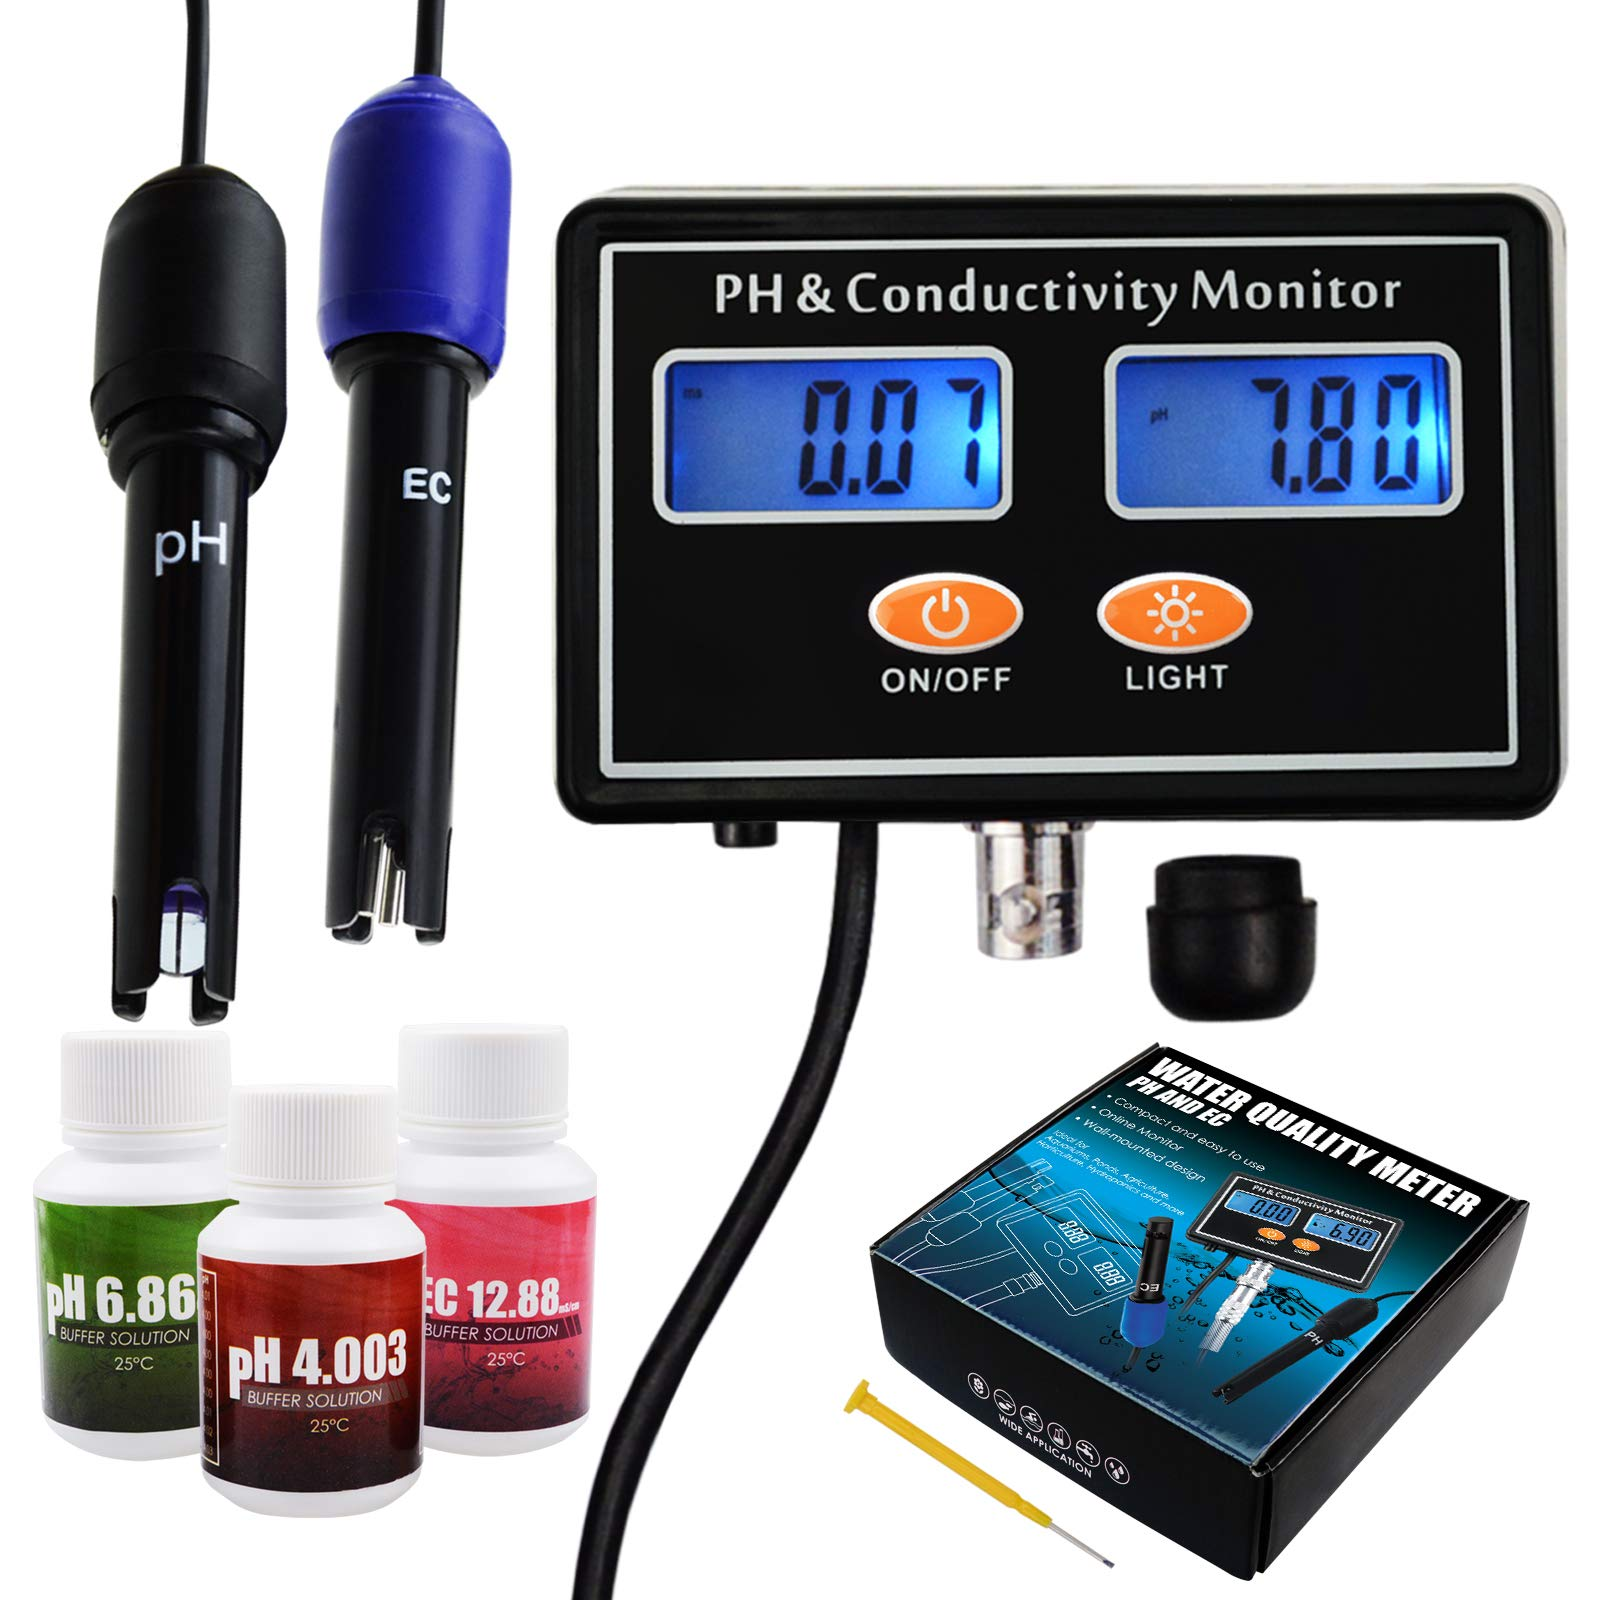 pH/EC Conductivity Meter with ATC Water Quality Tester 0.0-14.0pH / 0~19.99ms/cm Aquarium, Hydroponics Tool by DANOPLUS